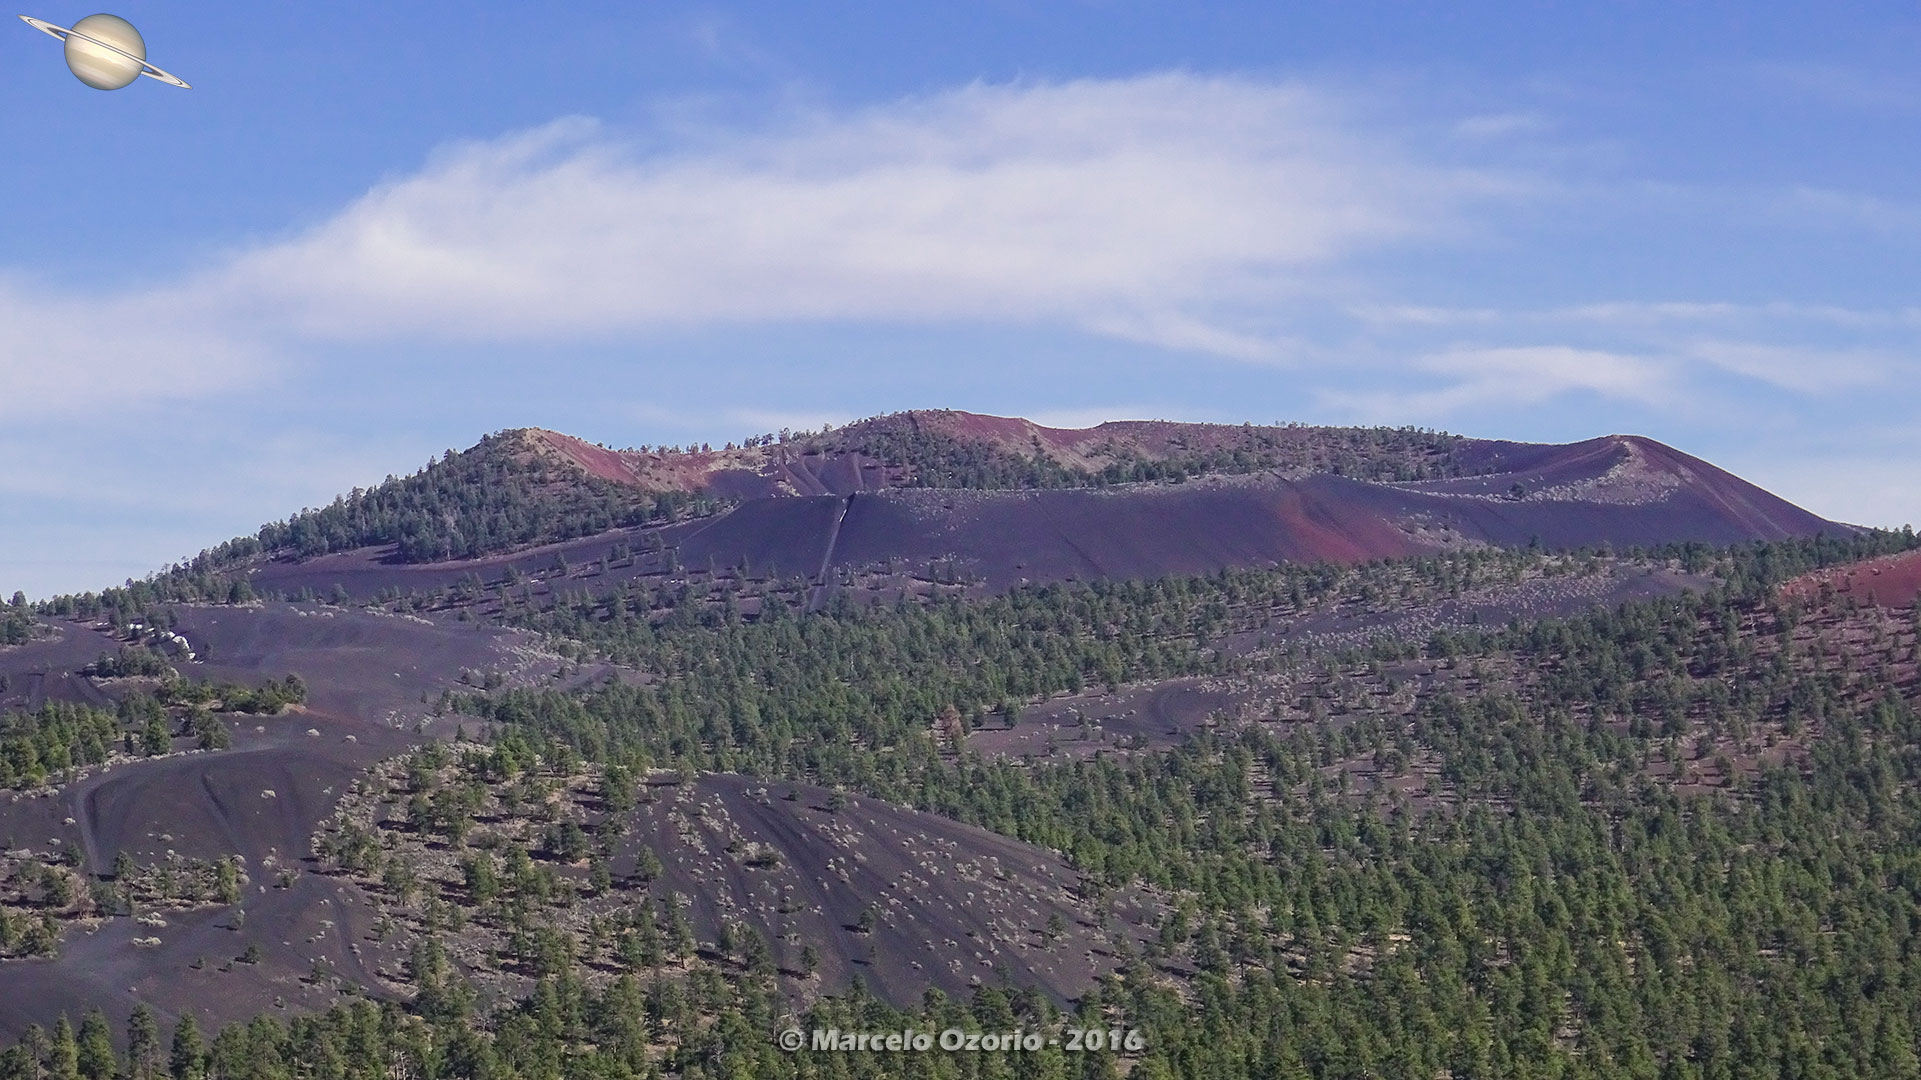 Sunset Crater Volcano Arizona 33 - Frozen Lava Fields at Sunset Crater Volcano - Arizona